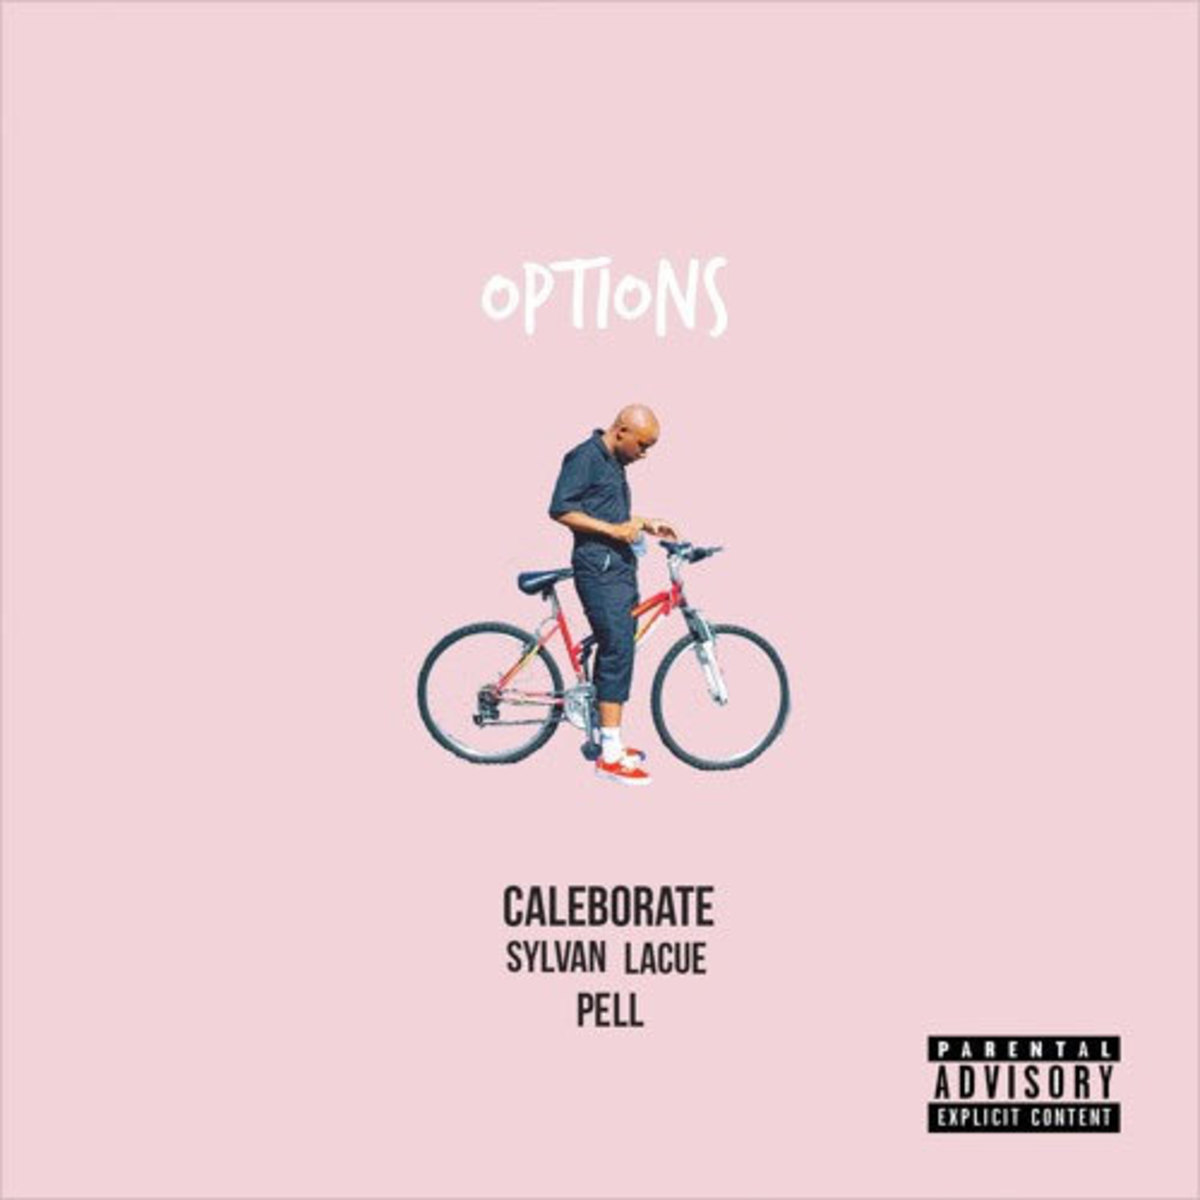 caleborate-options.jpg